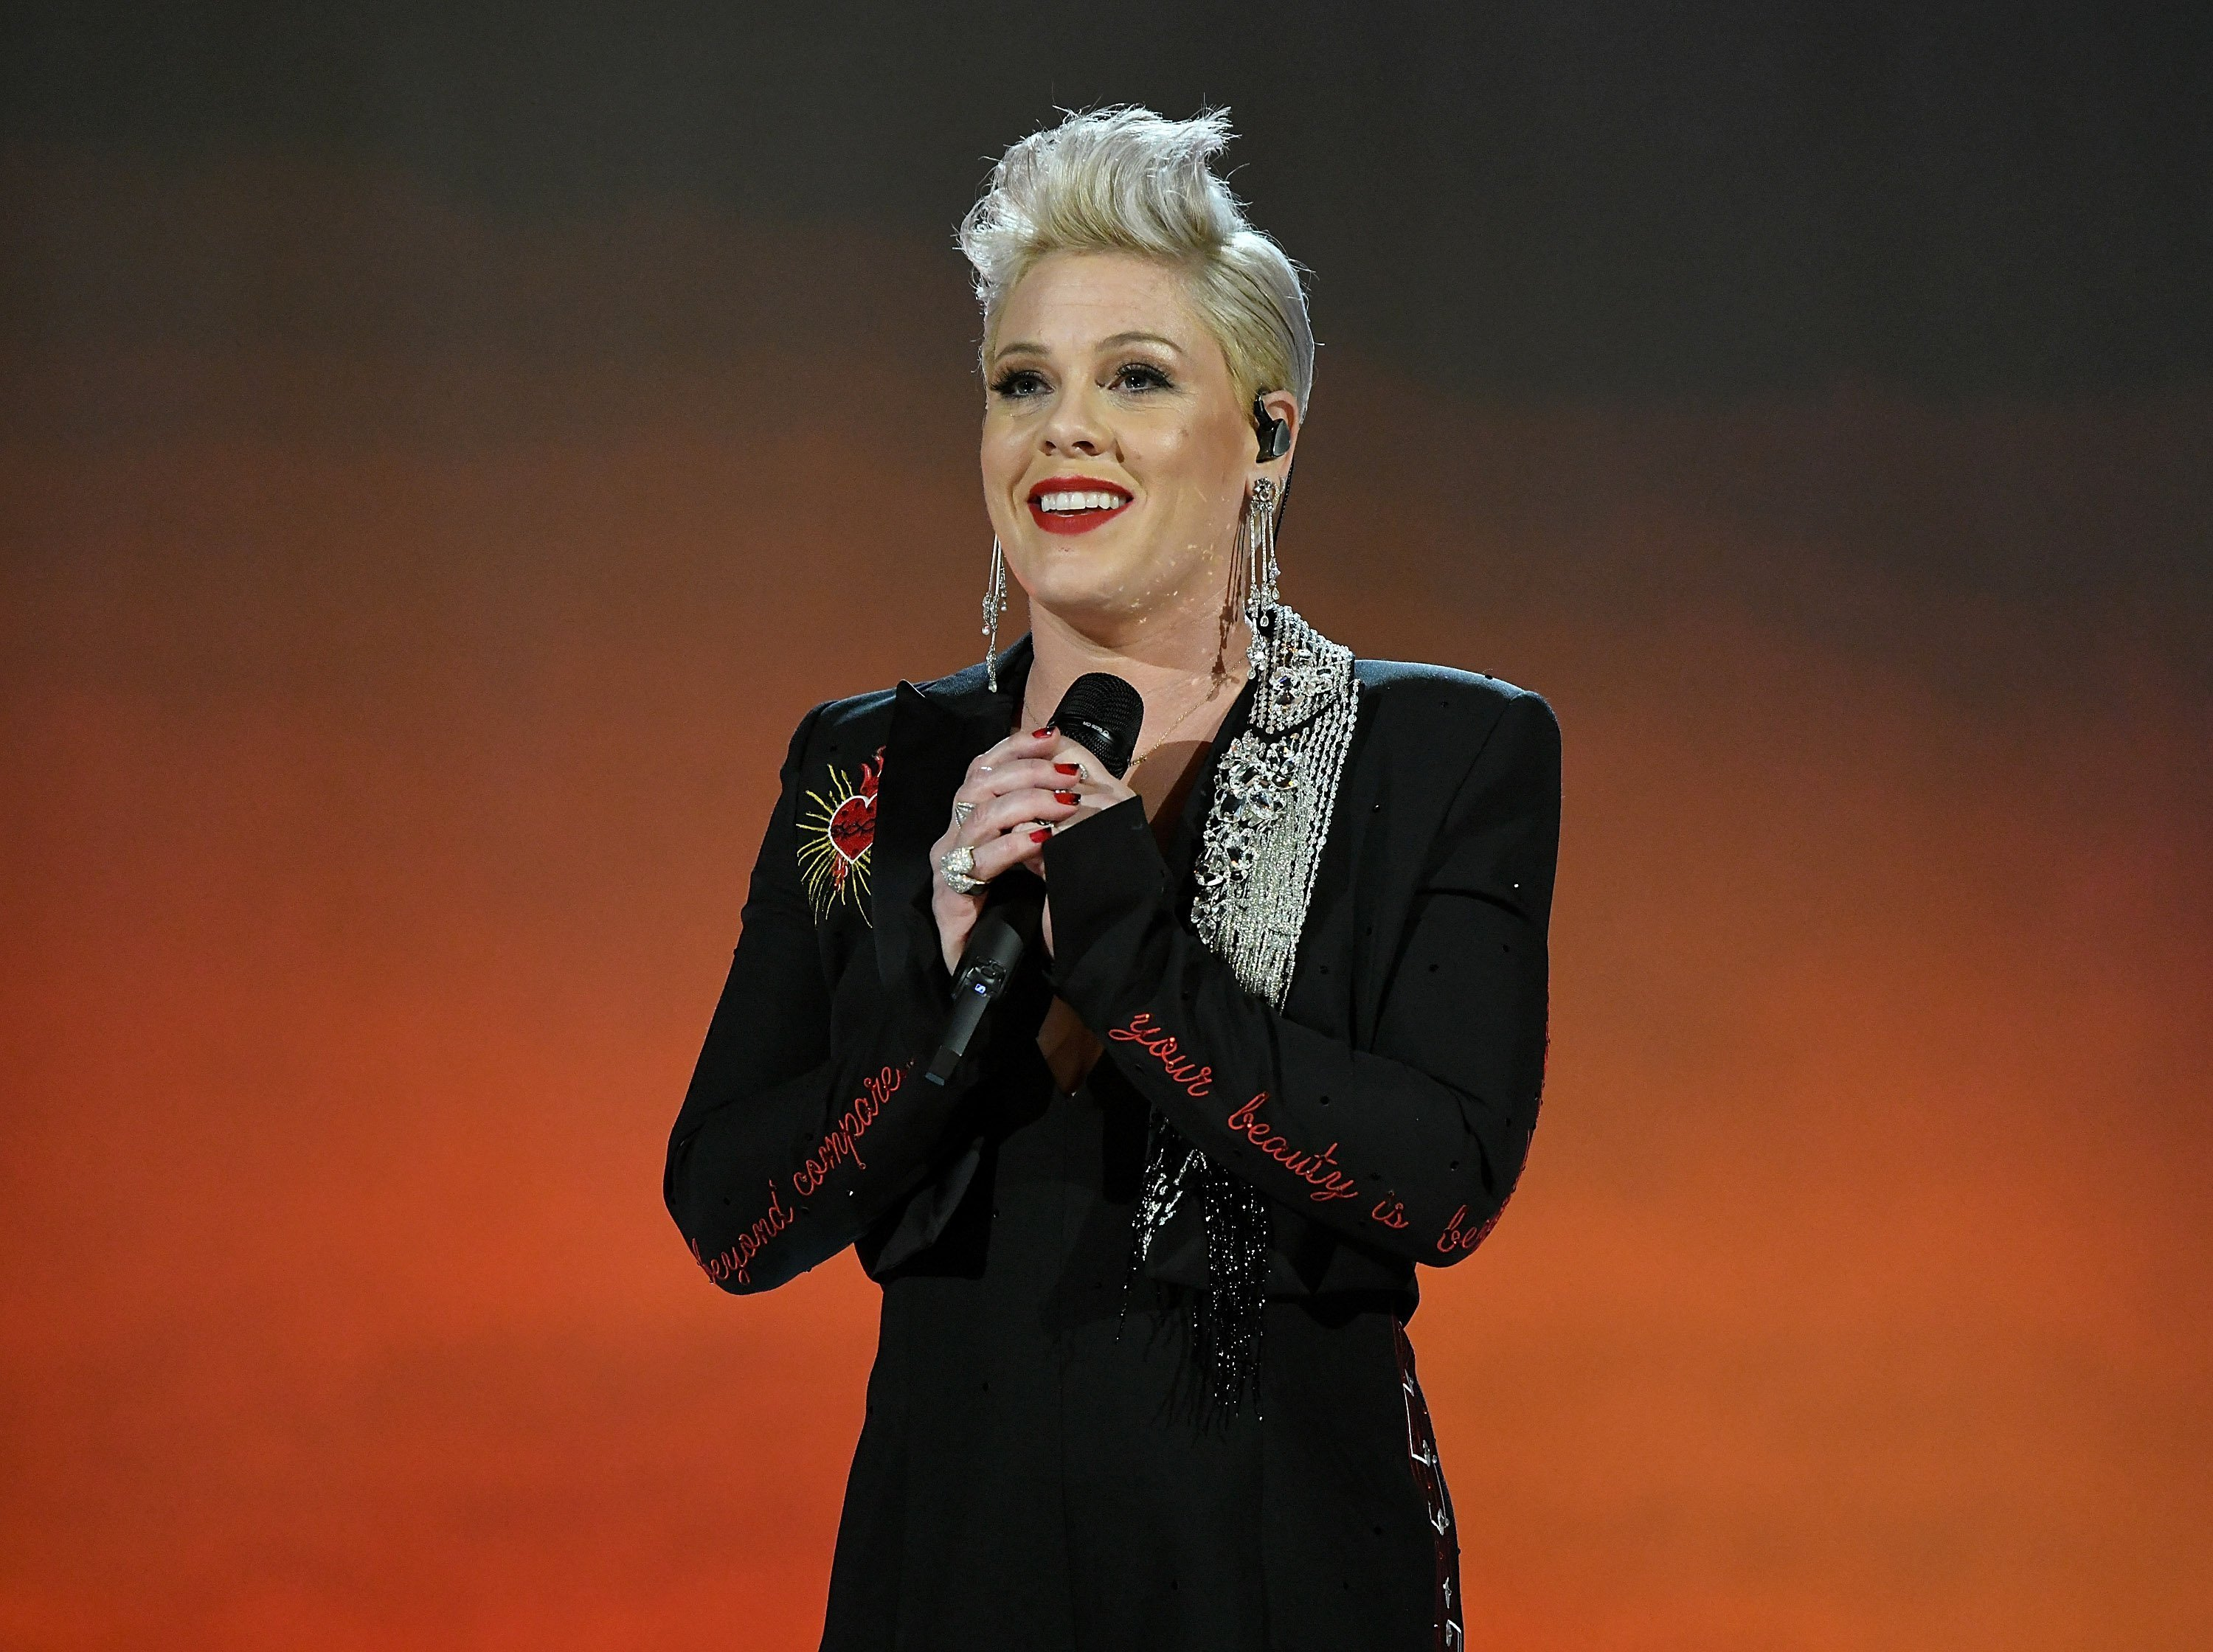 Pink performs onstage at MusiCares Person of the Year honoring Dolly Parton at Los Angeles Convention Center on February 8, 2019, in Los Angeles, California. | Source: Getty Images.